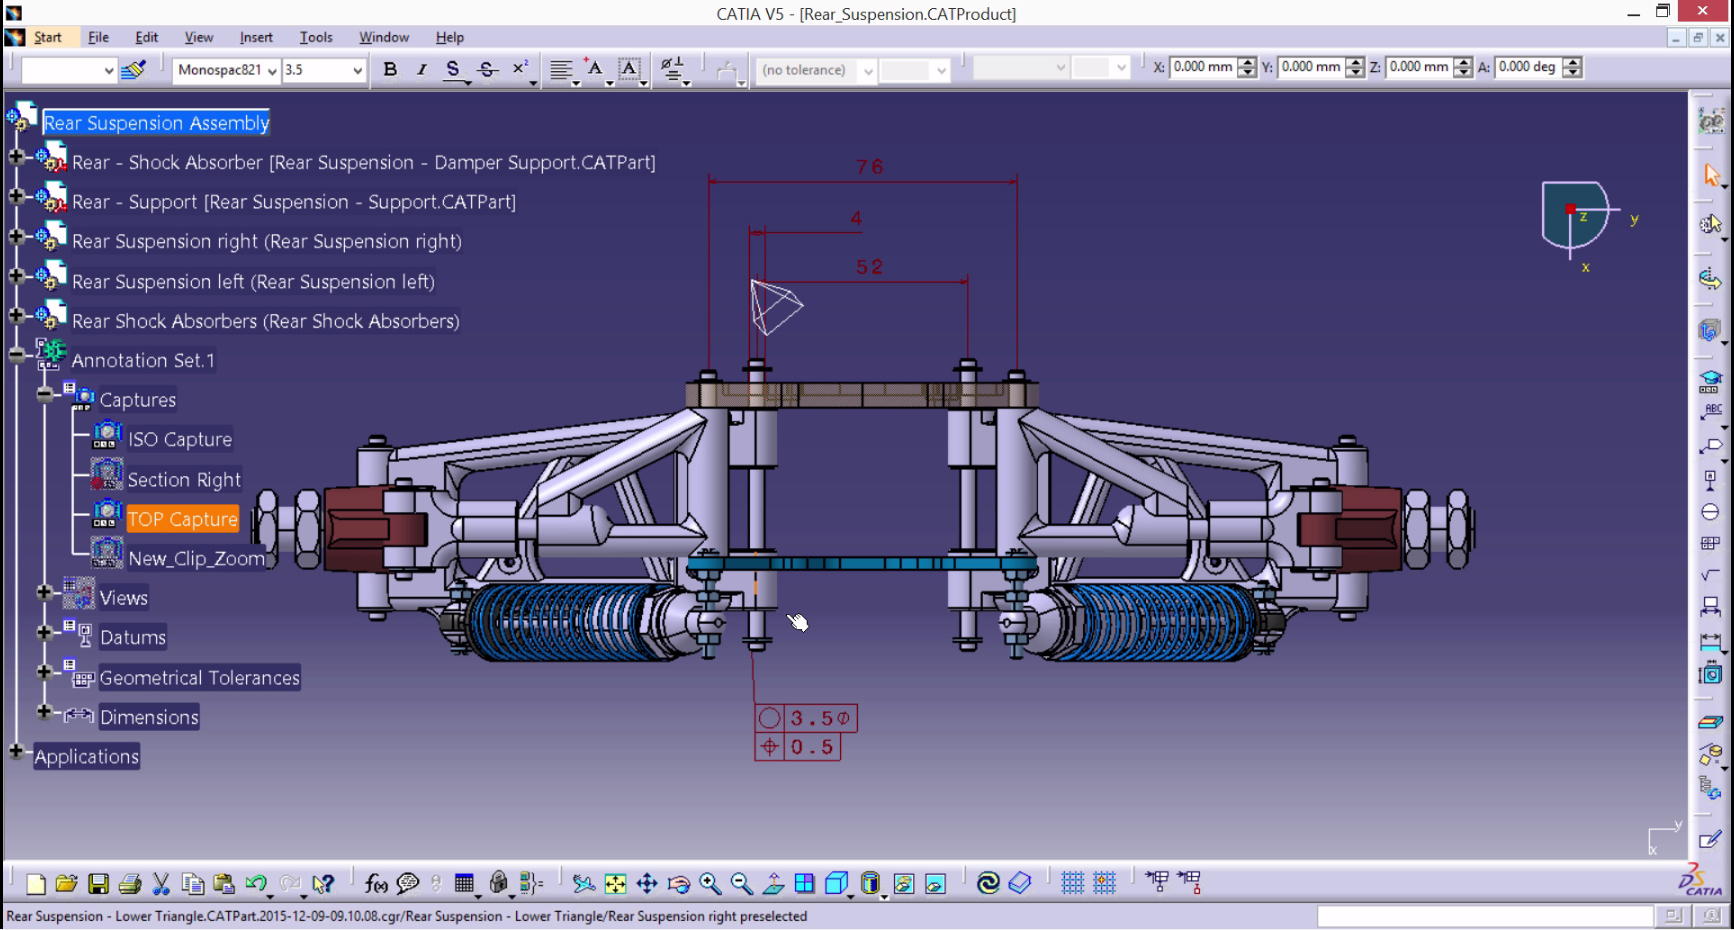 CATIA-Suspension